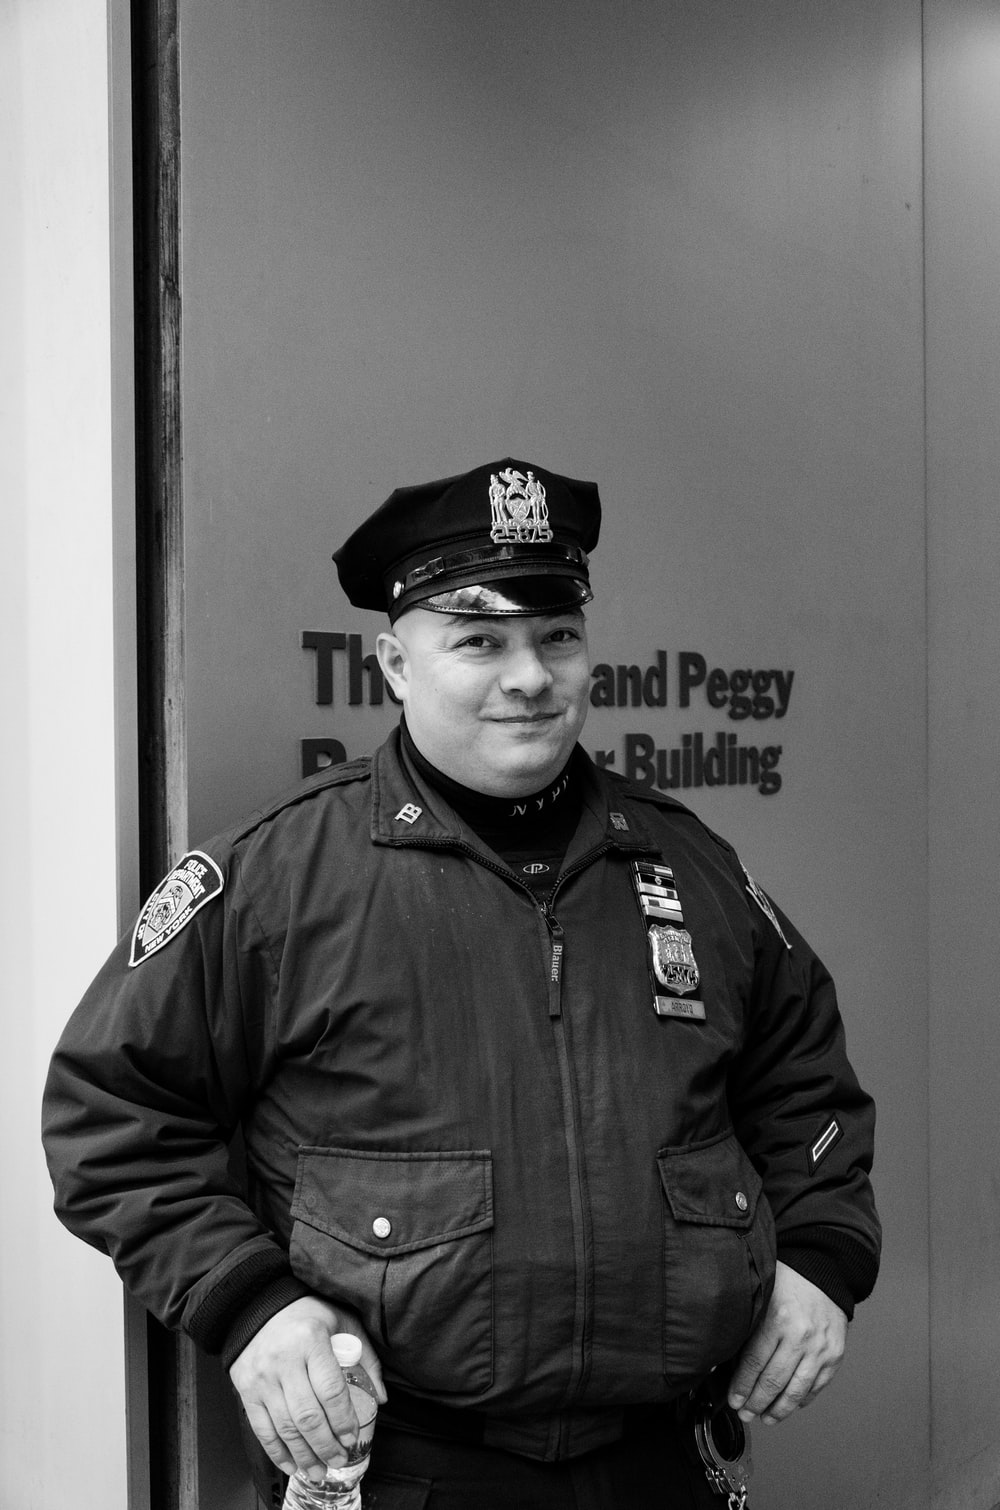 grayscale photography of police man